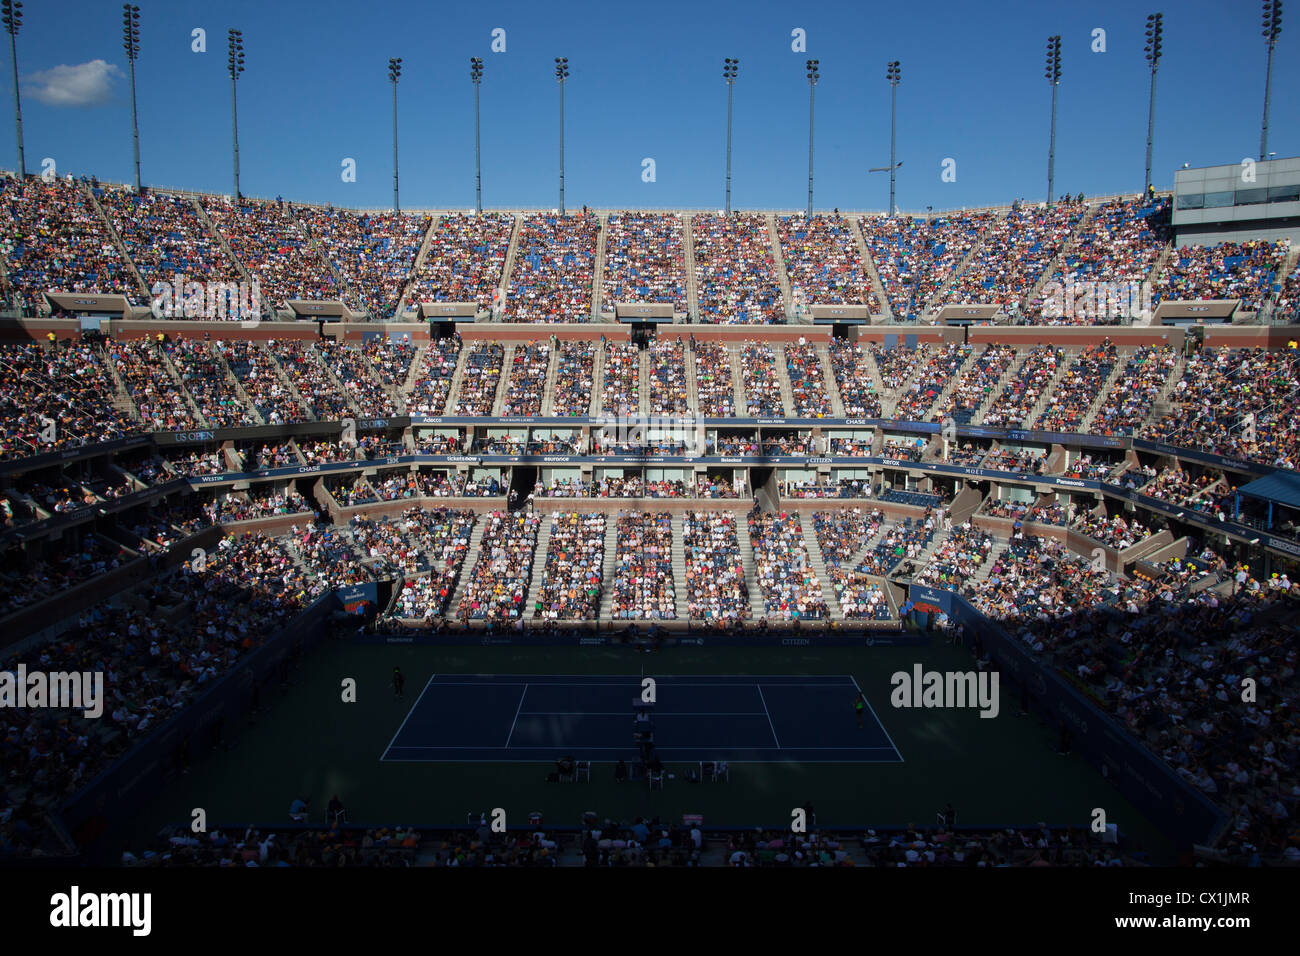 Arthur Ashe Stadium during the Women's Finals at the 2012 US Open Tennis - Stock Image